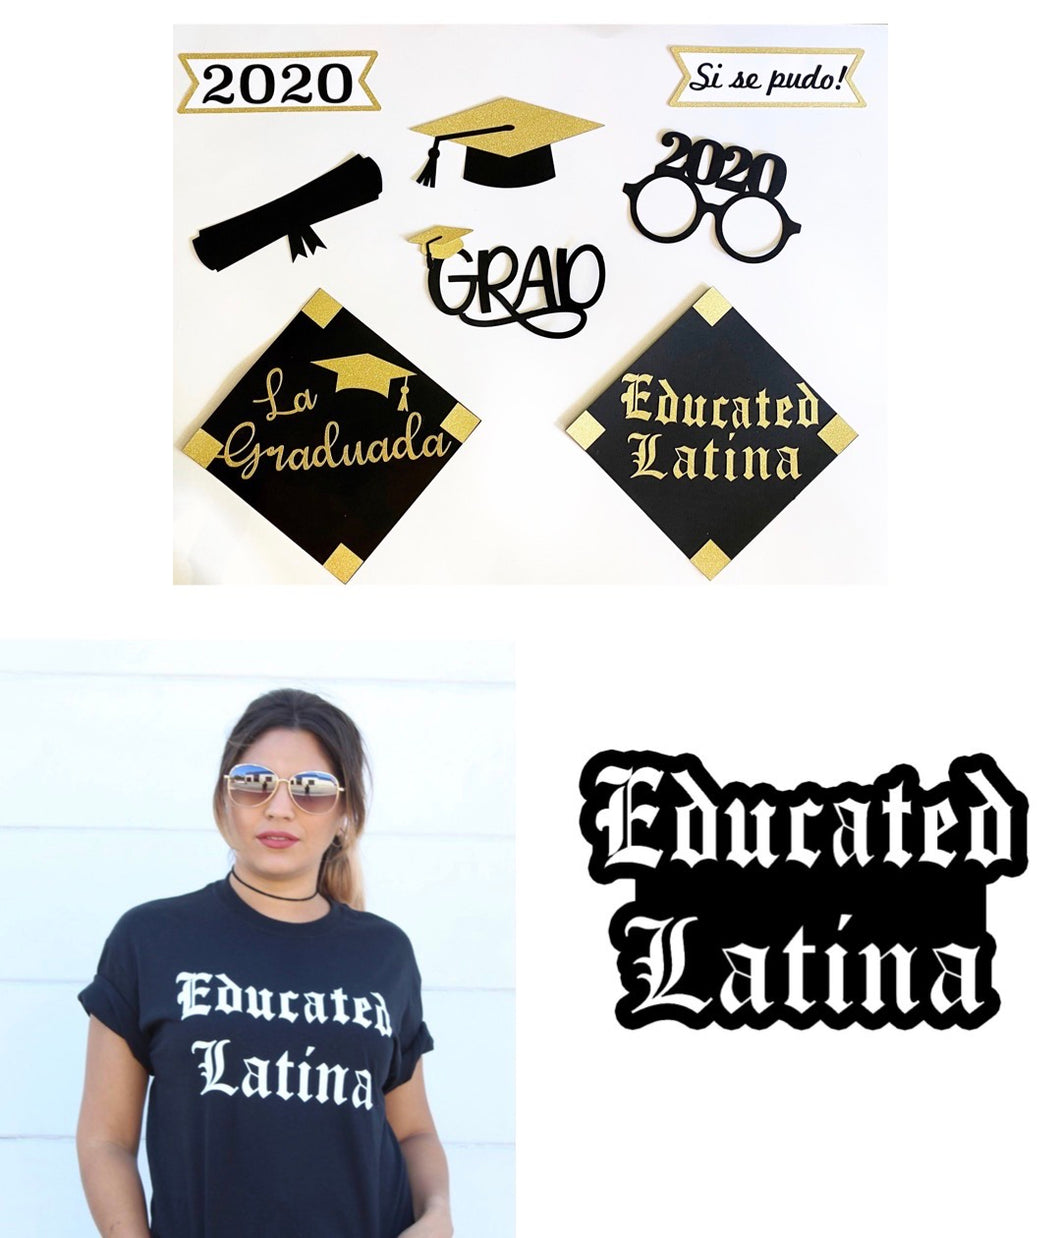 La Graduada Combo Pack! Shop La Maestra 'Educated Latina' Adult Tee and Photobooth Prop Package